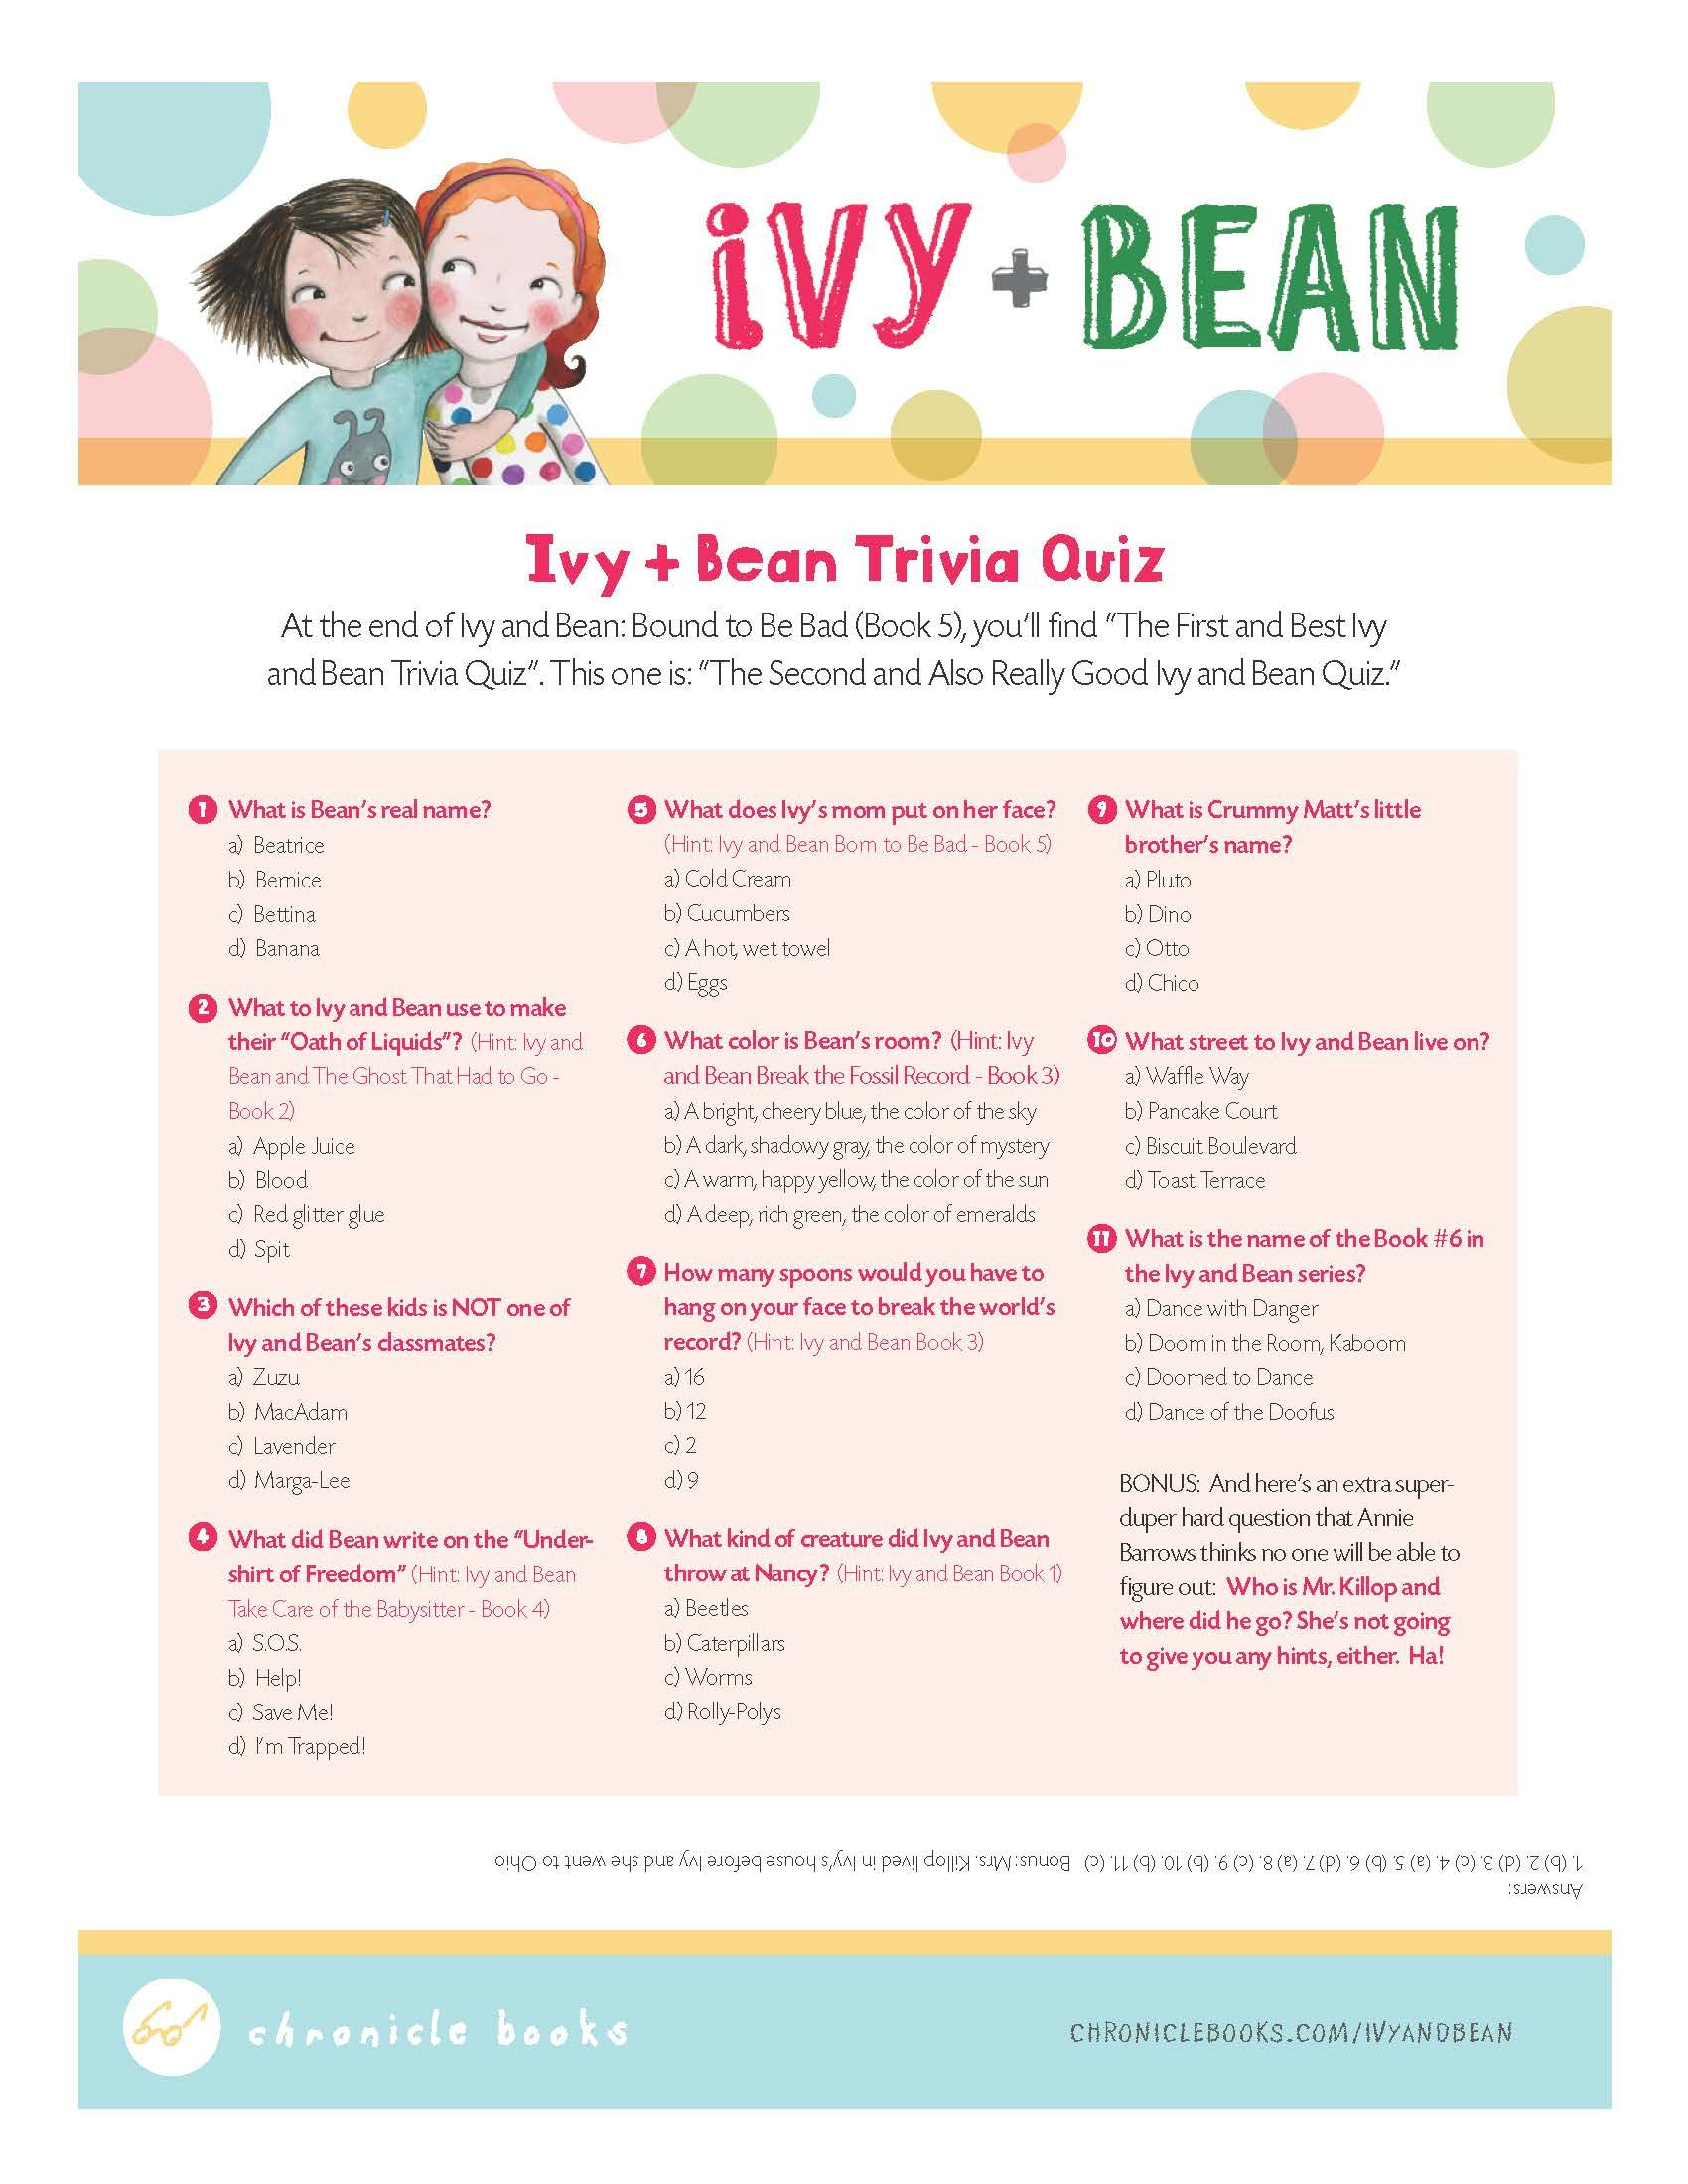 Ivy and Bean Trivia Quiz | For Ivy + Bean Fans | Pinterest | Trivia ...